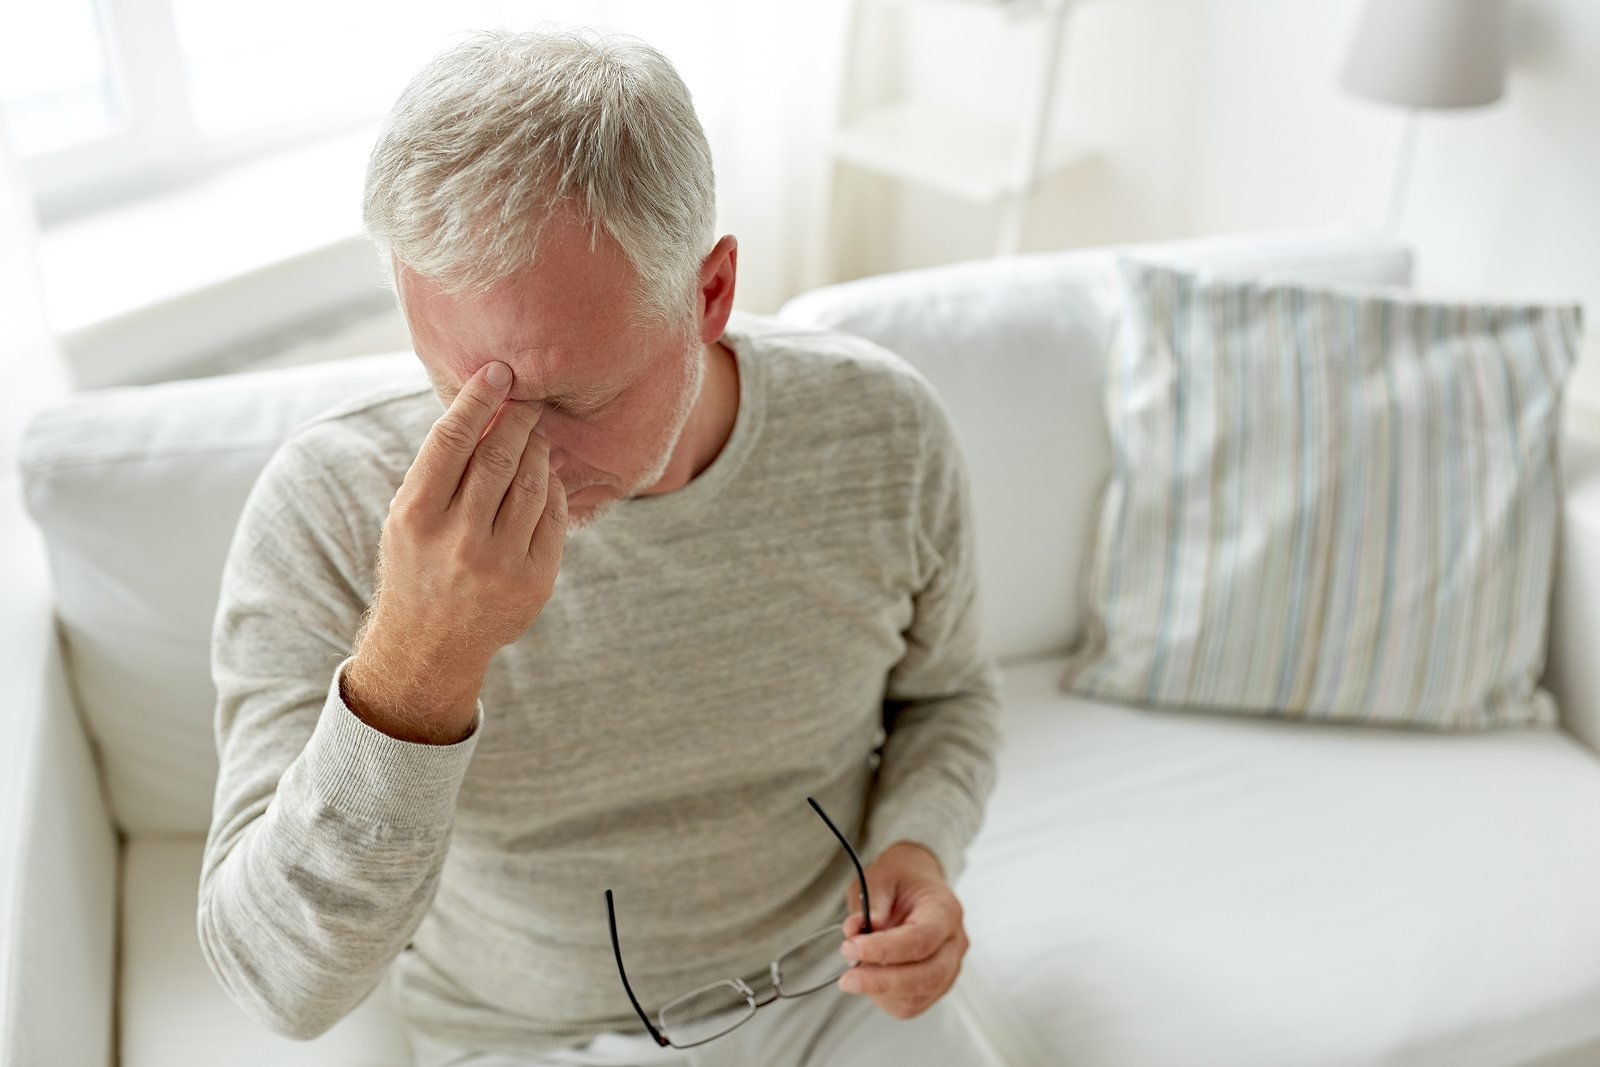 About Migraine Symptoms, Causes and Treatments